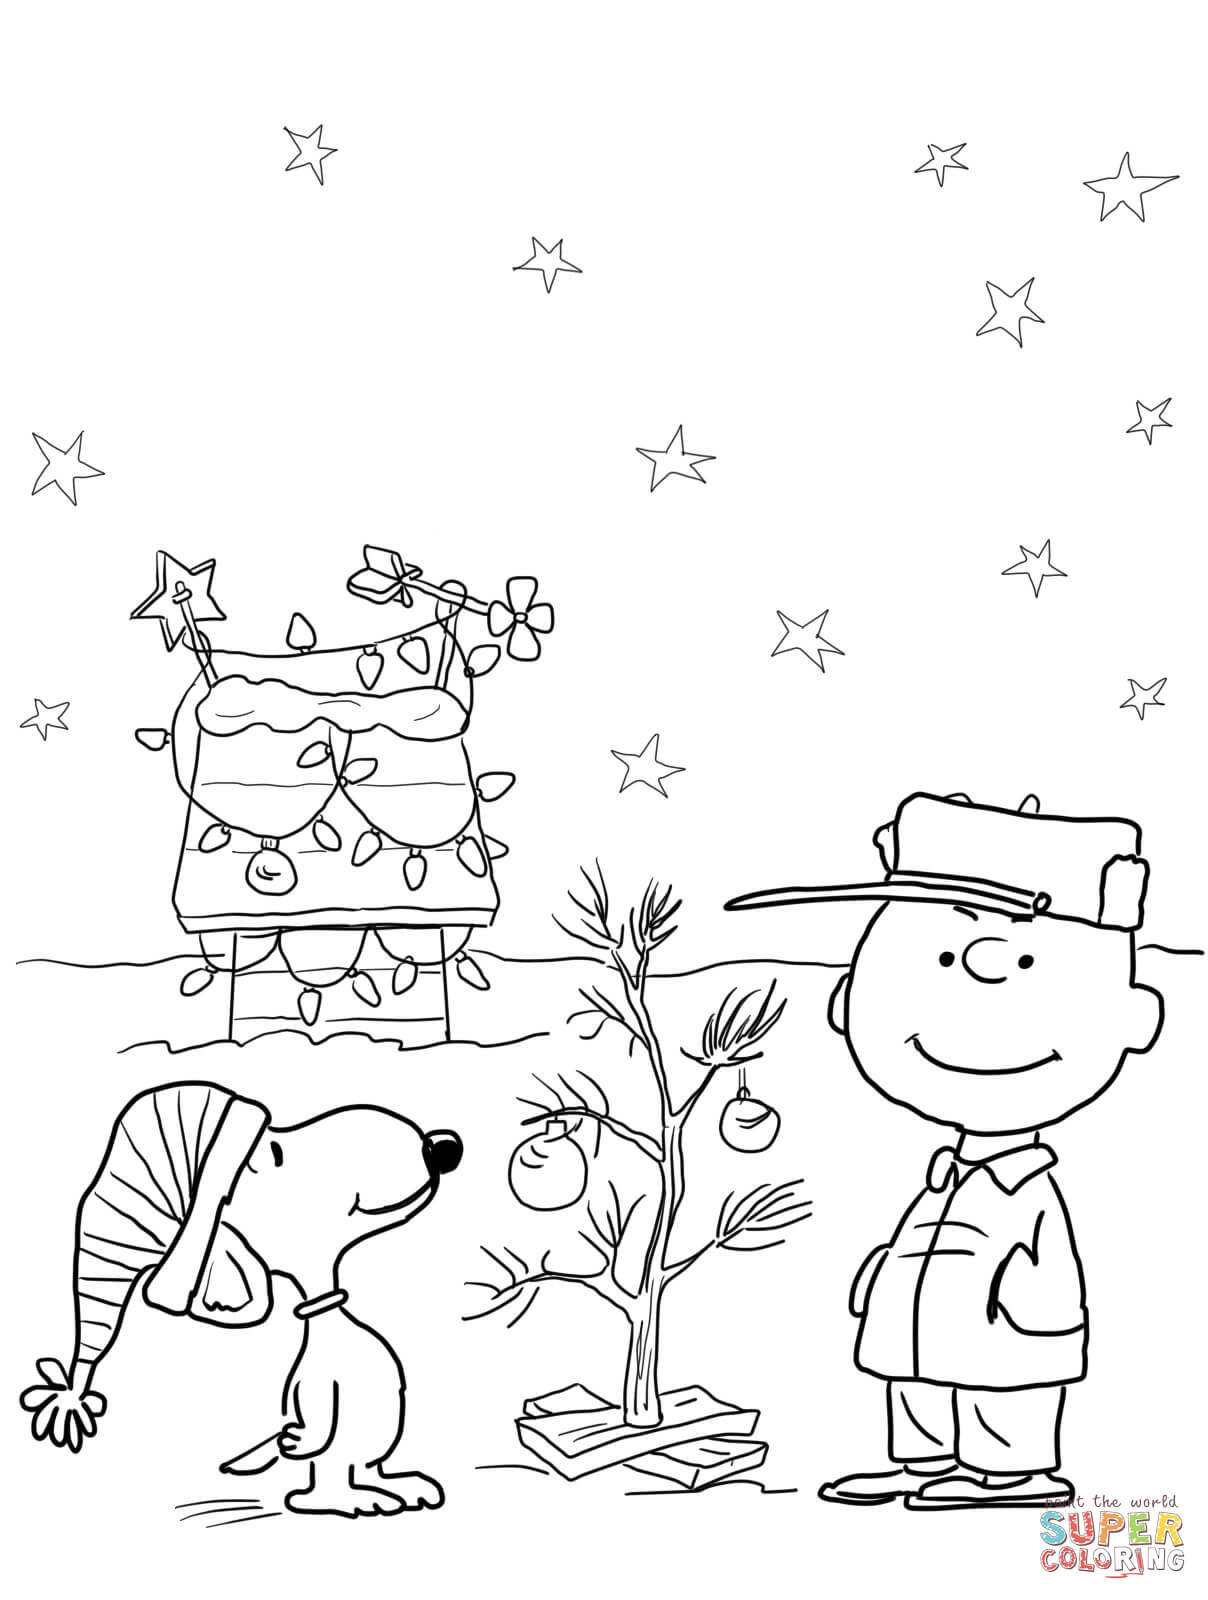 peanuts character coloring pages - photo#23